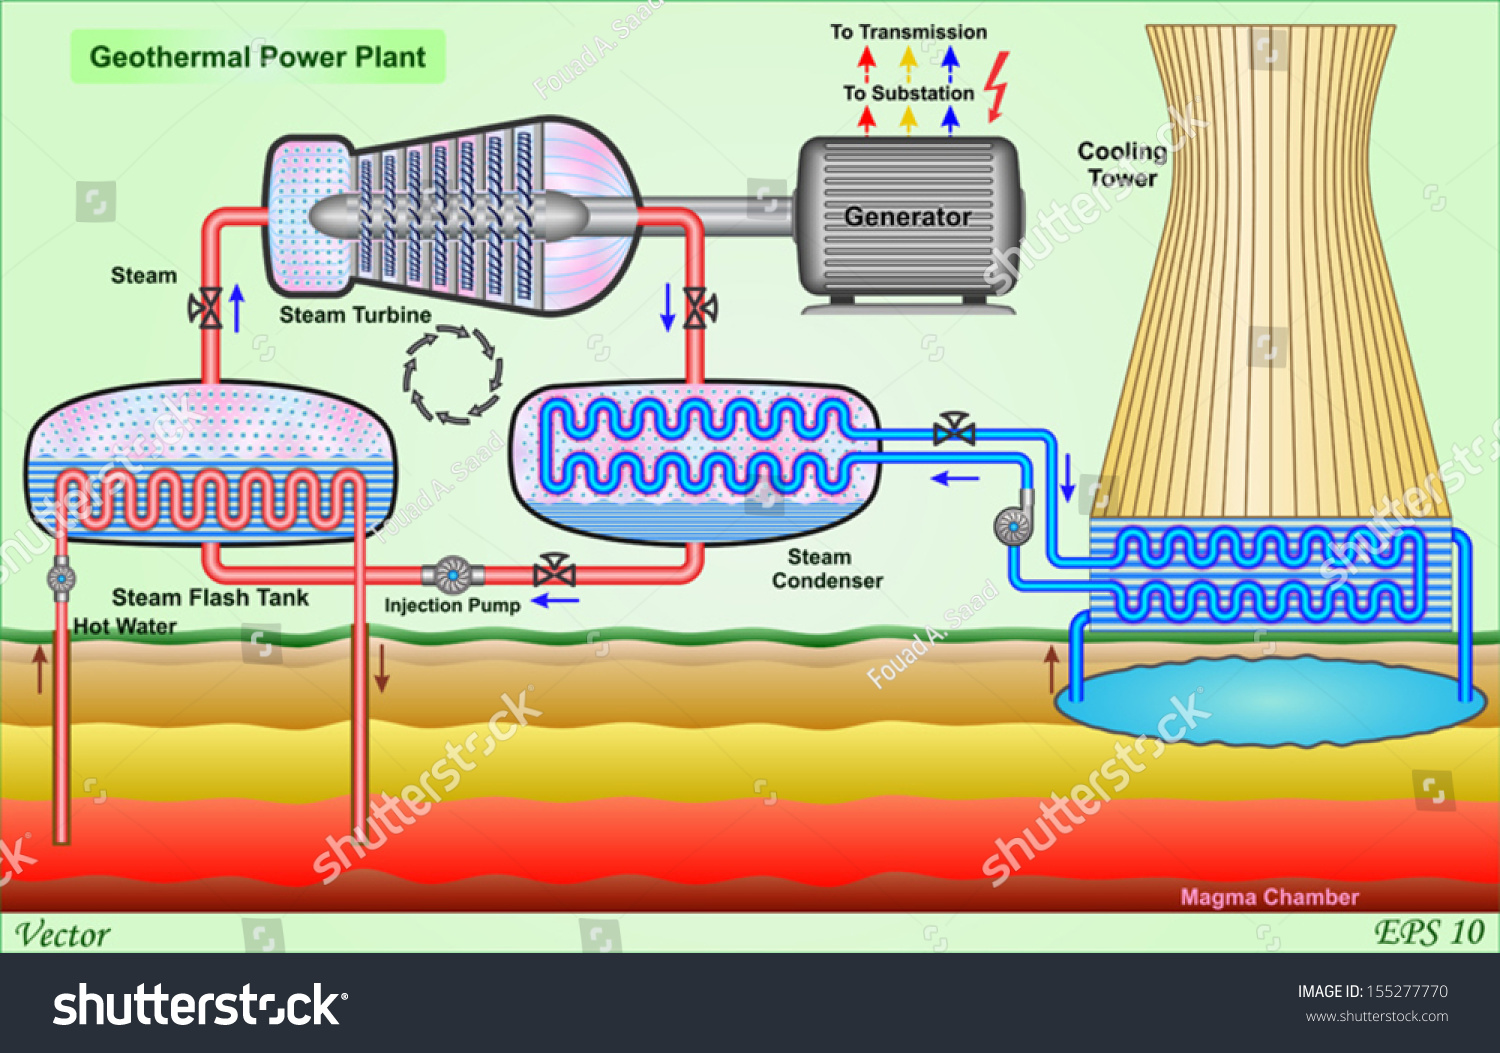 geothermal power plant #155277770